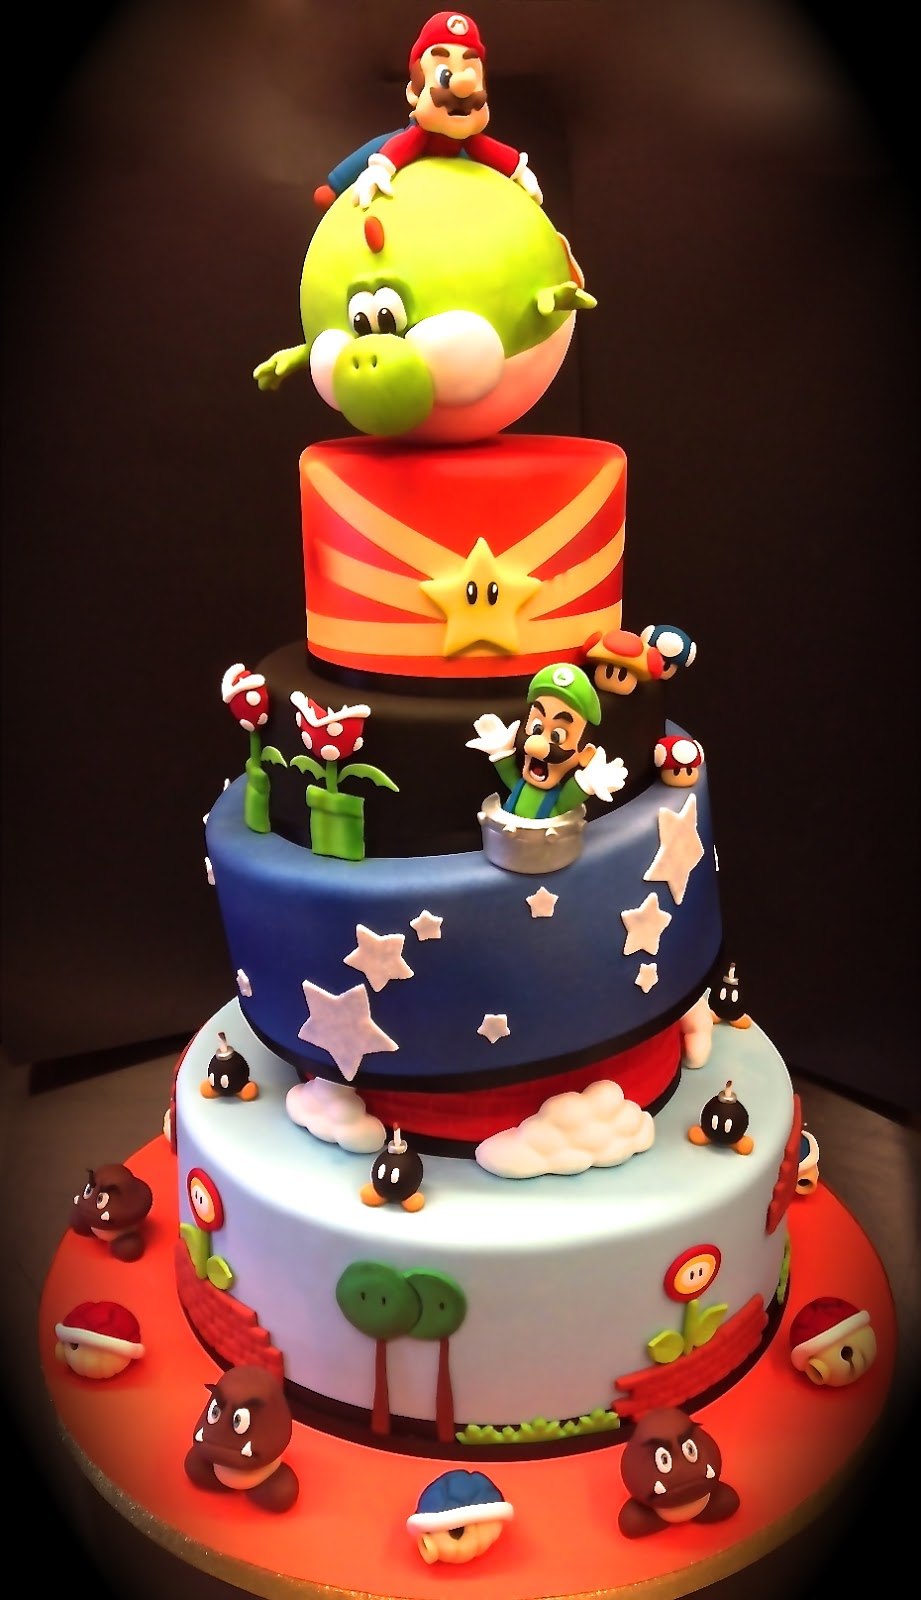 geek art gallery sweets super mario cake. Black Bedroom Furniture Sets. Home Design Ideas